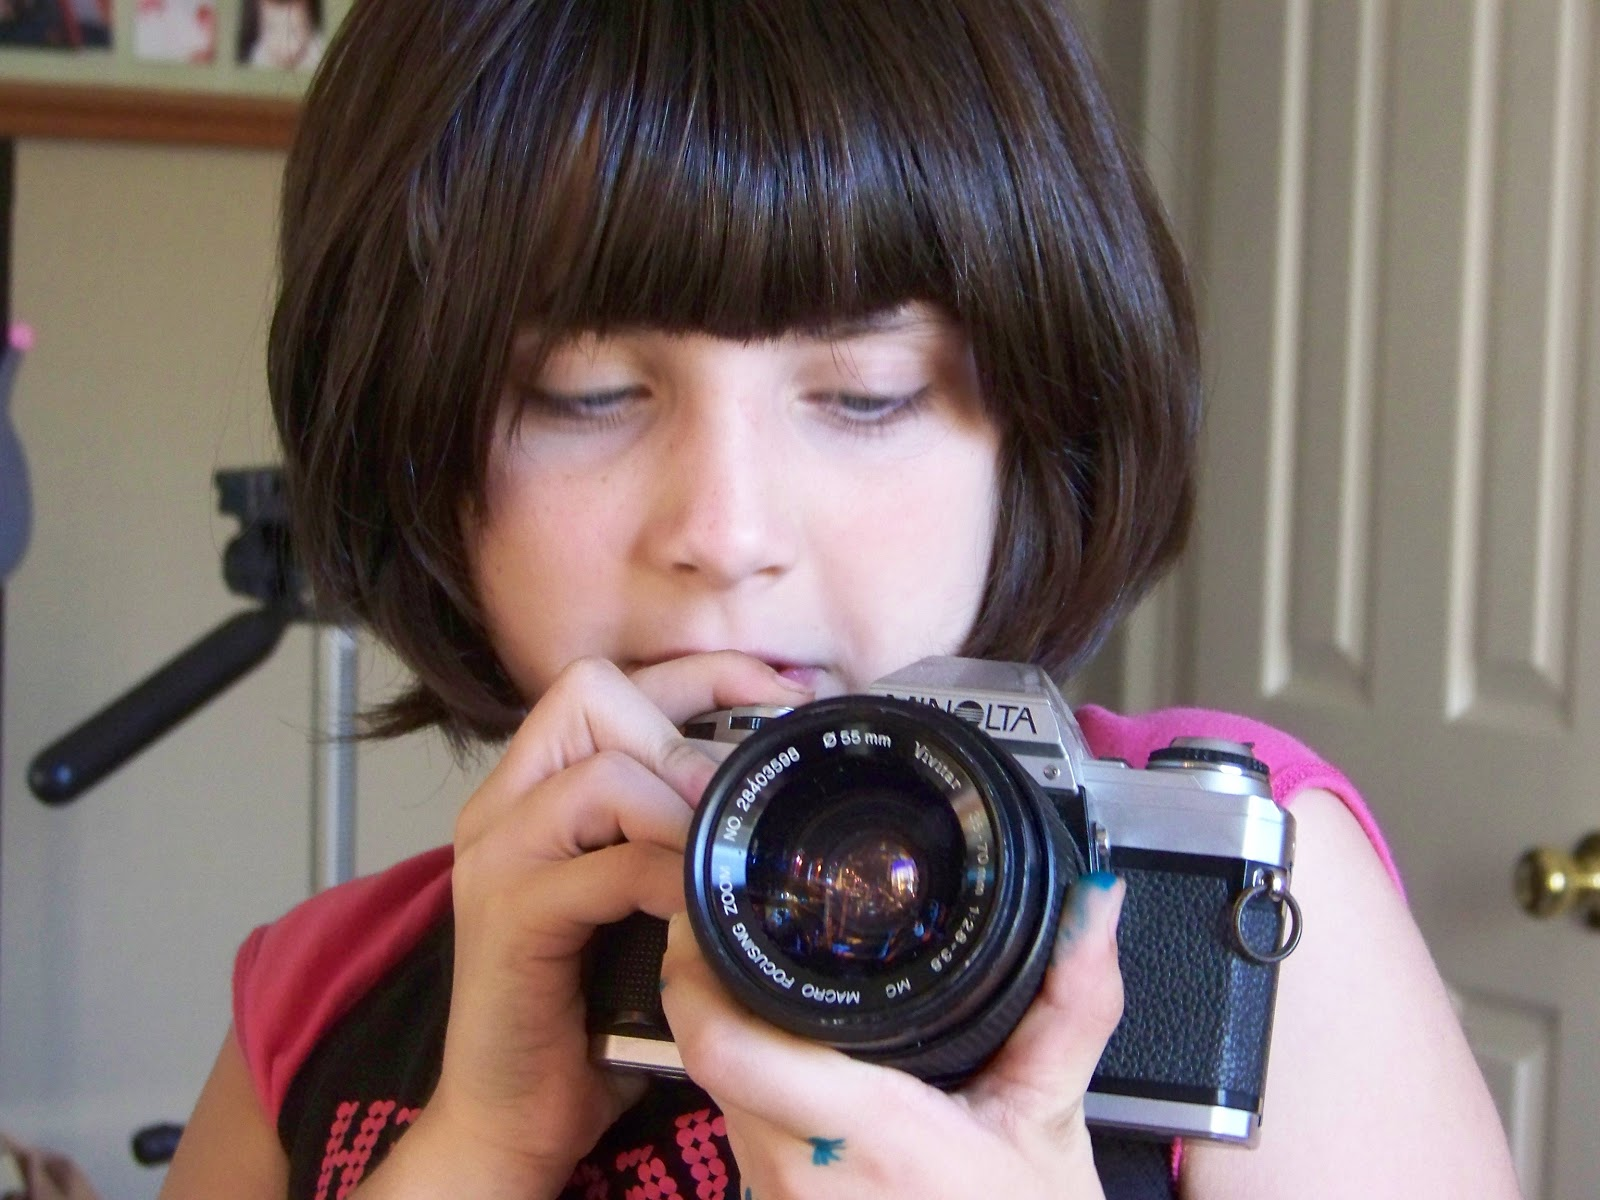 Choosing a digital digital camera is a lot easier when you think about it